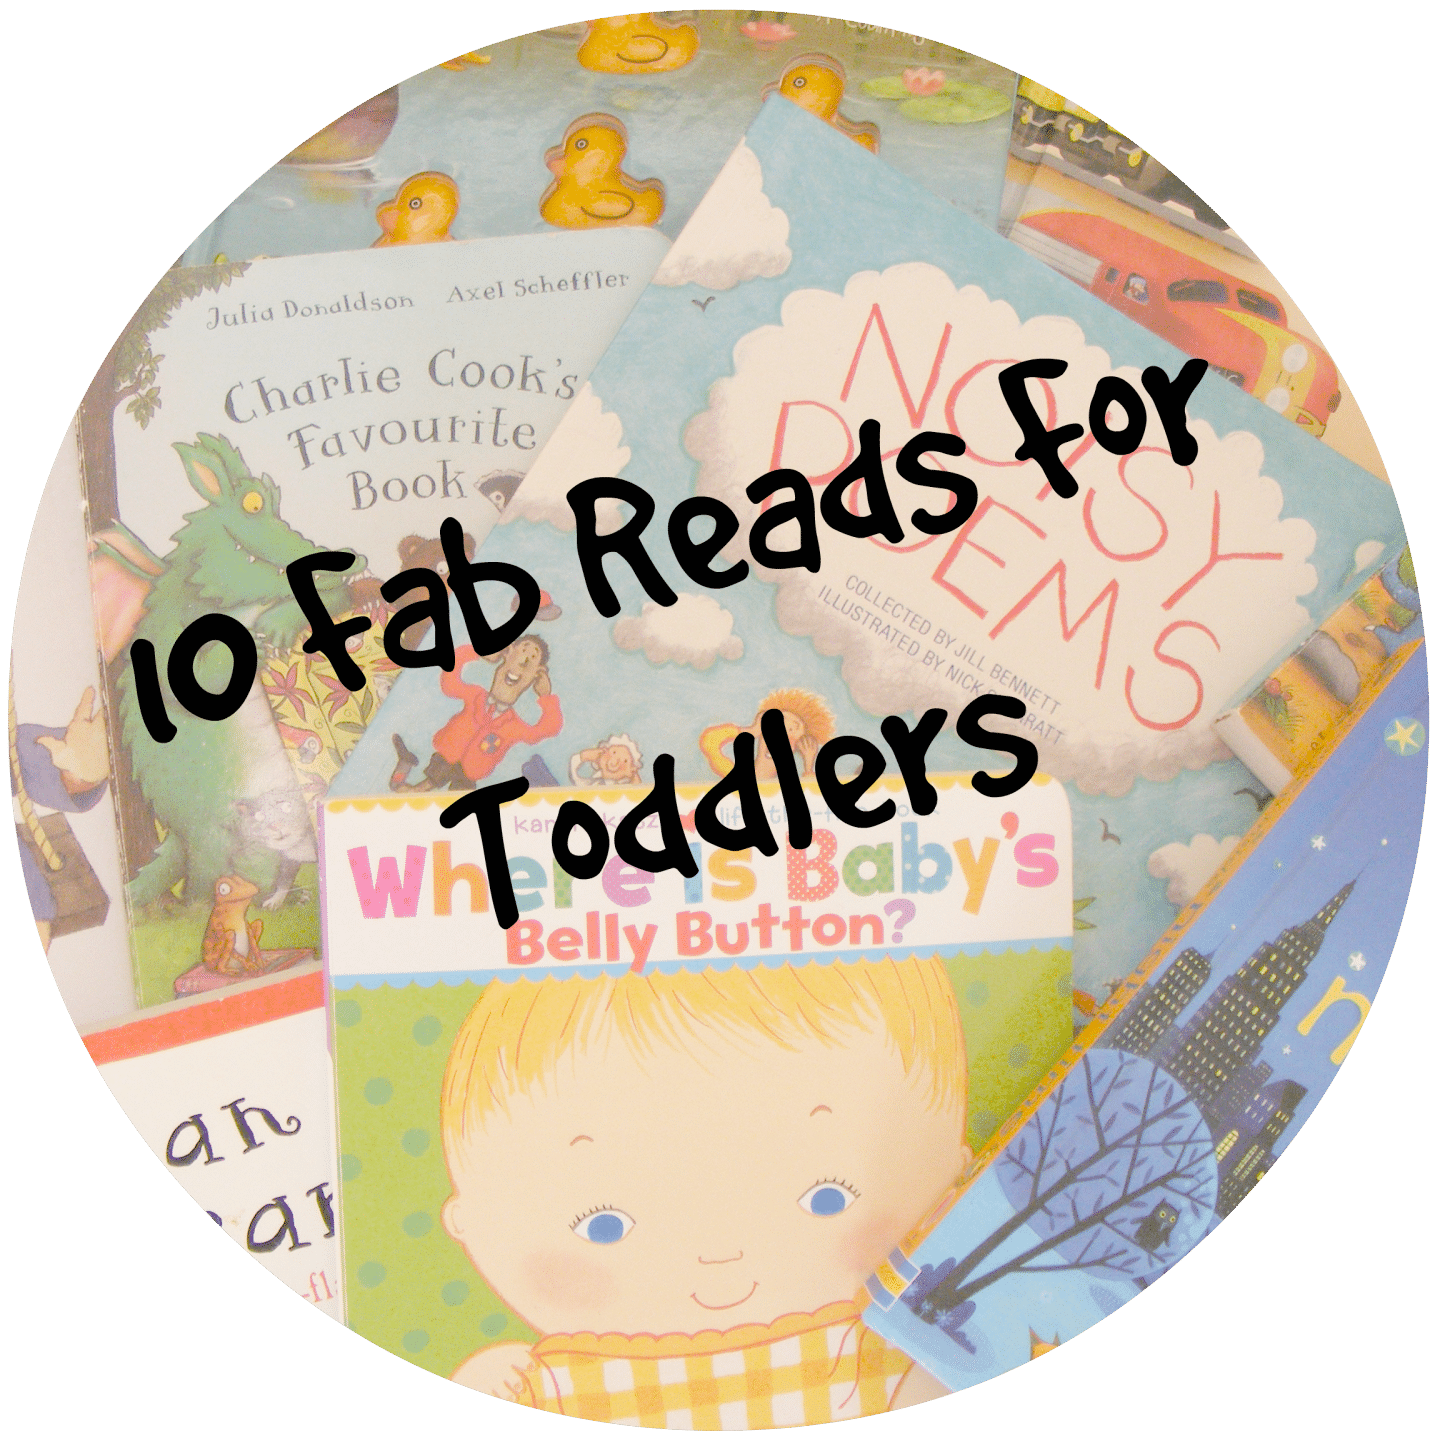 10 Fab Reads for Toddlers